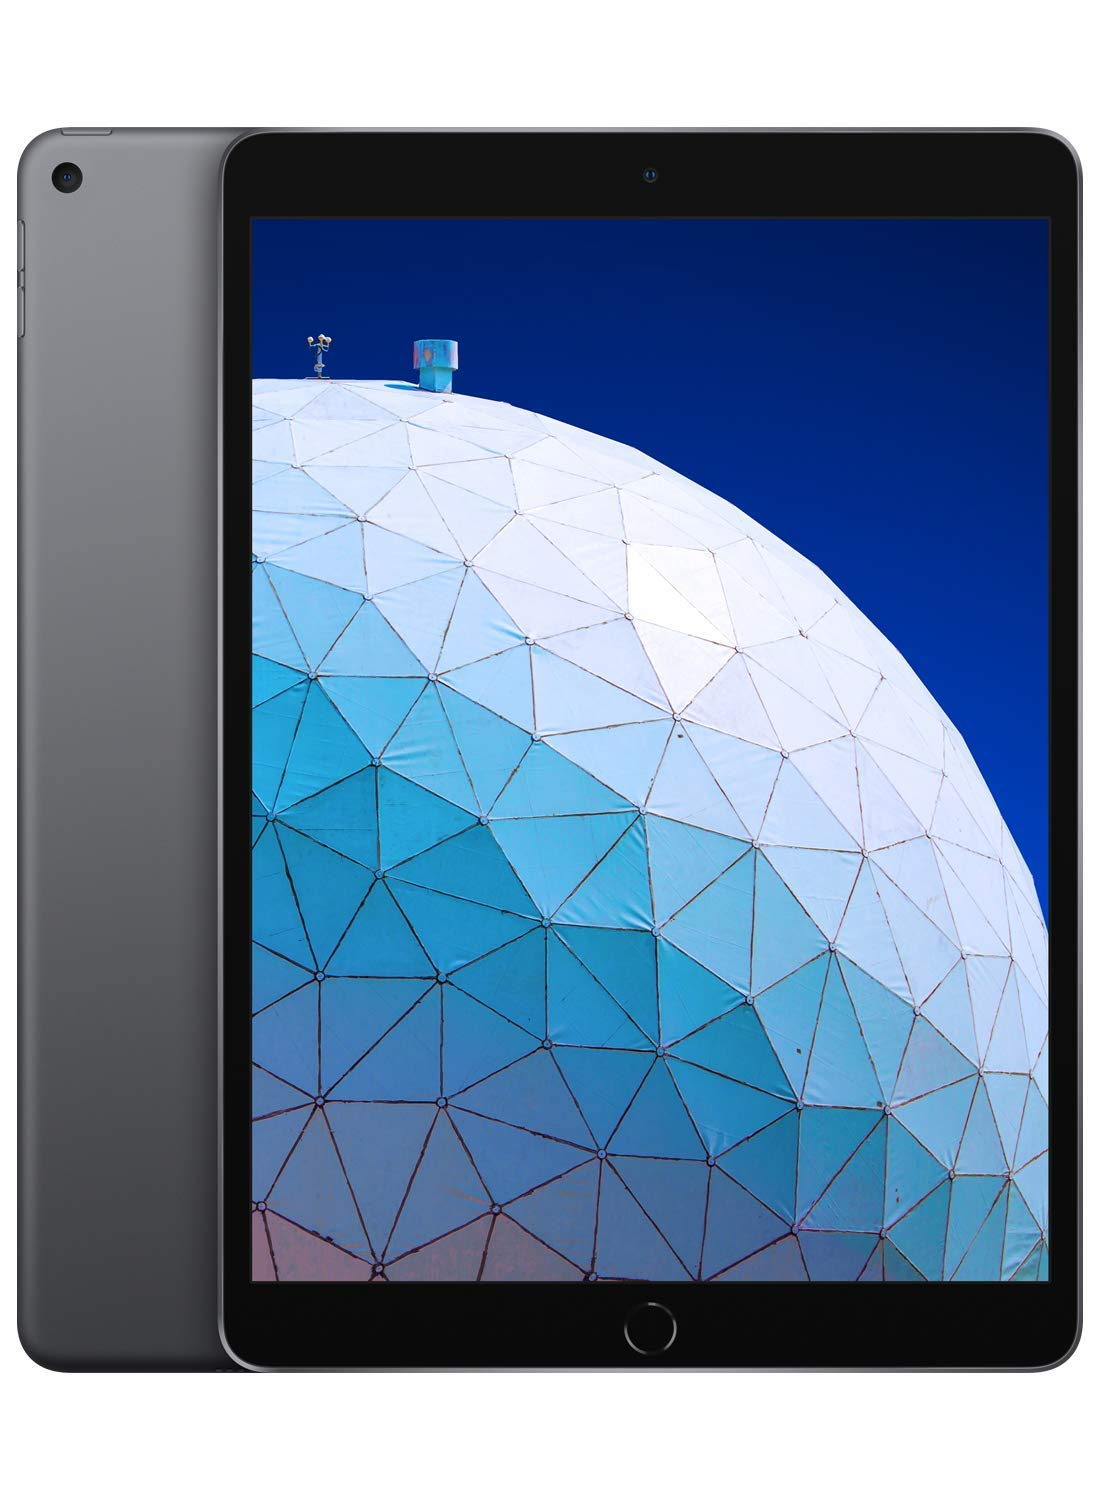 Apple iPad Air (10.5-inch, Wi-Fi, 64GB) - Space Gray (Latest Model) by Apple